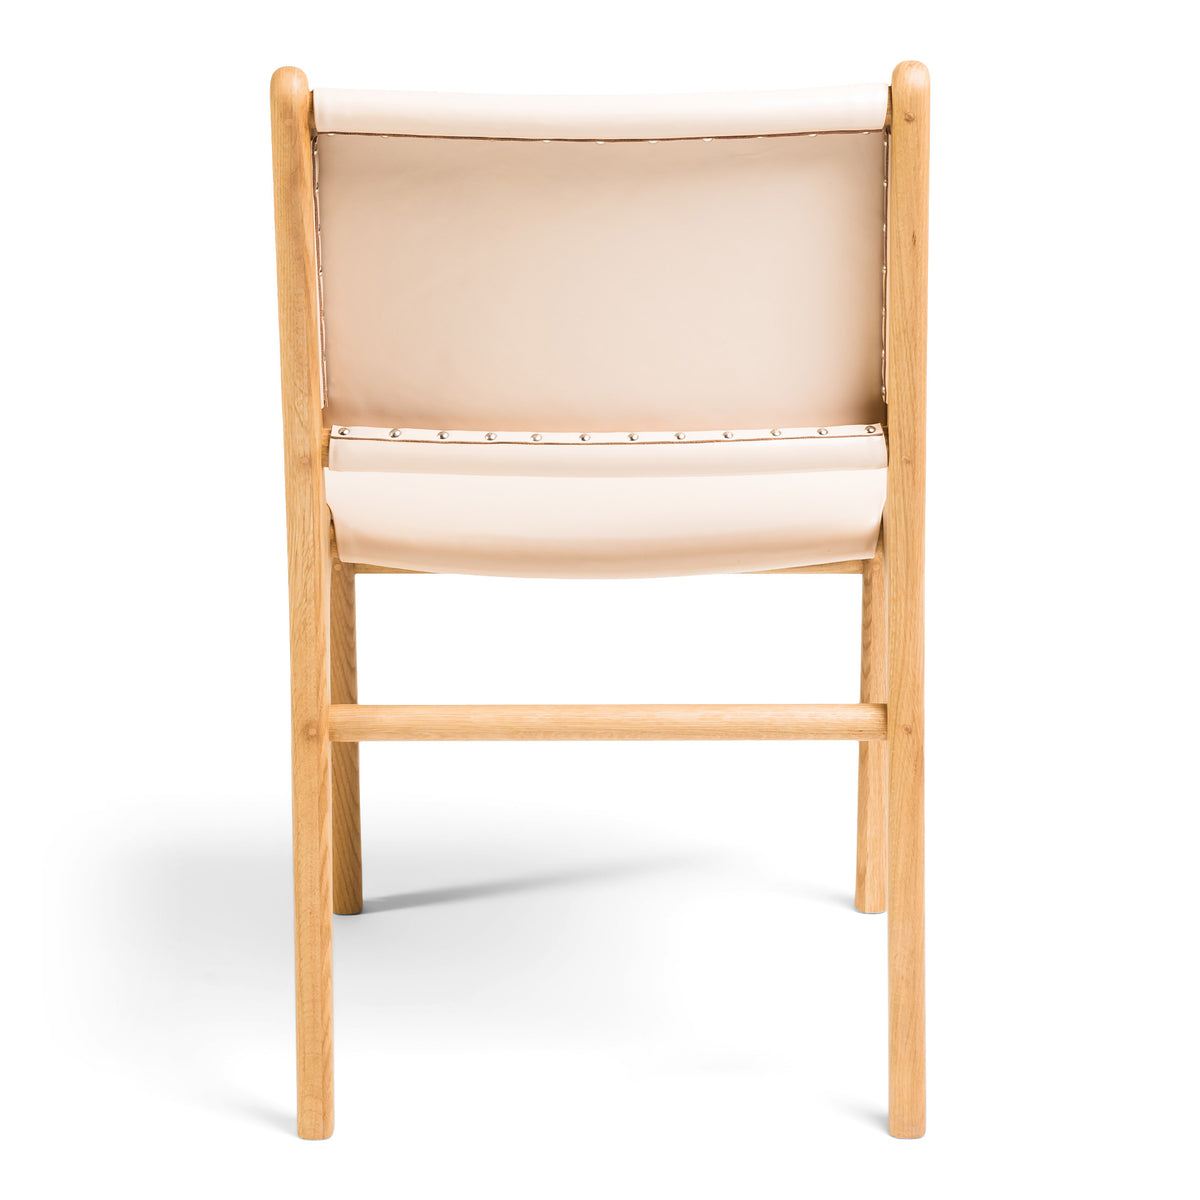 Spensley Dining Chair - Rose Blush